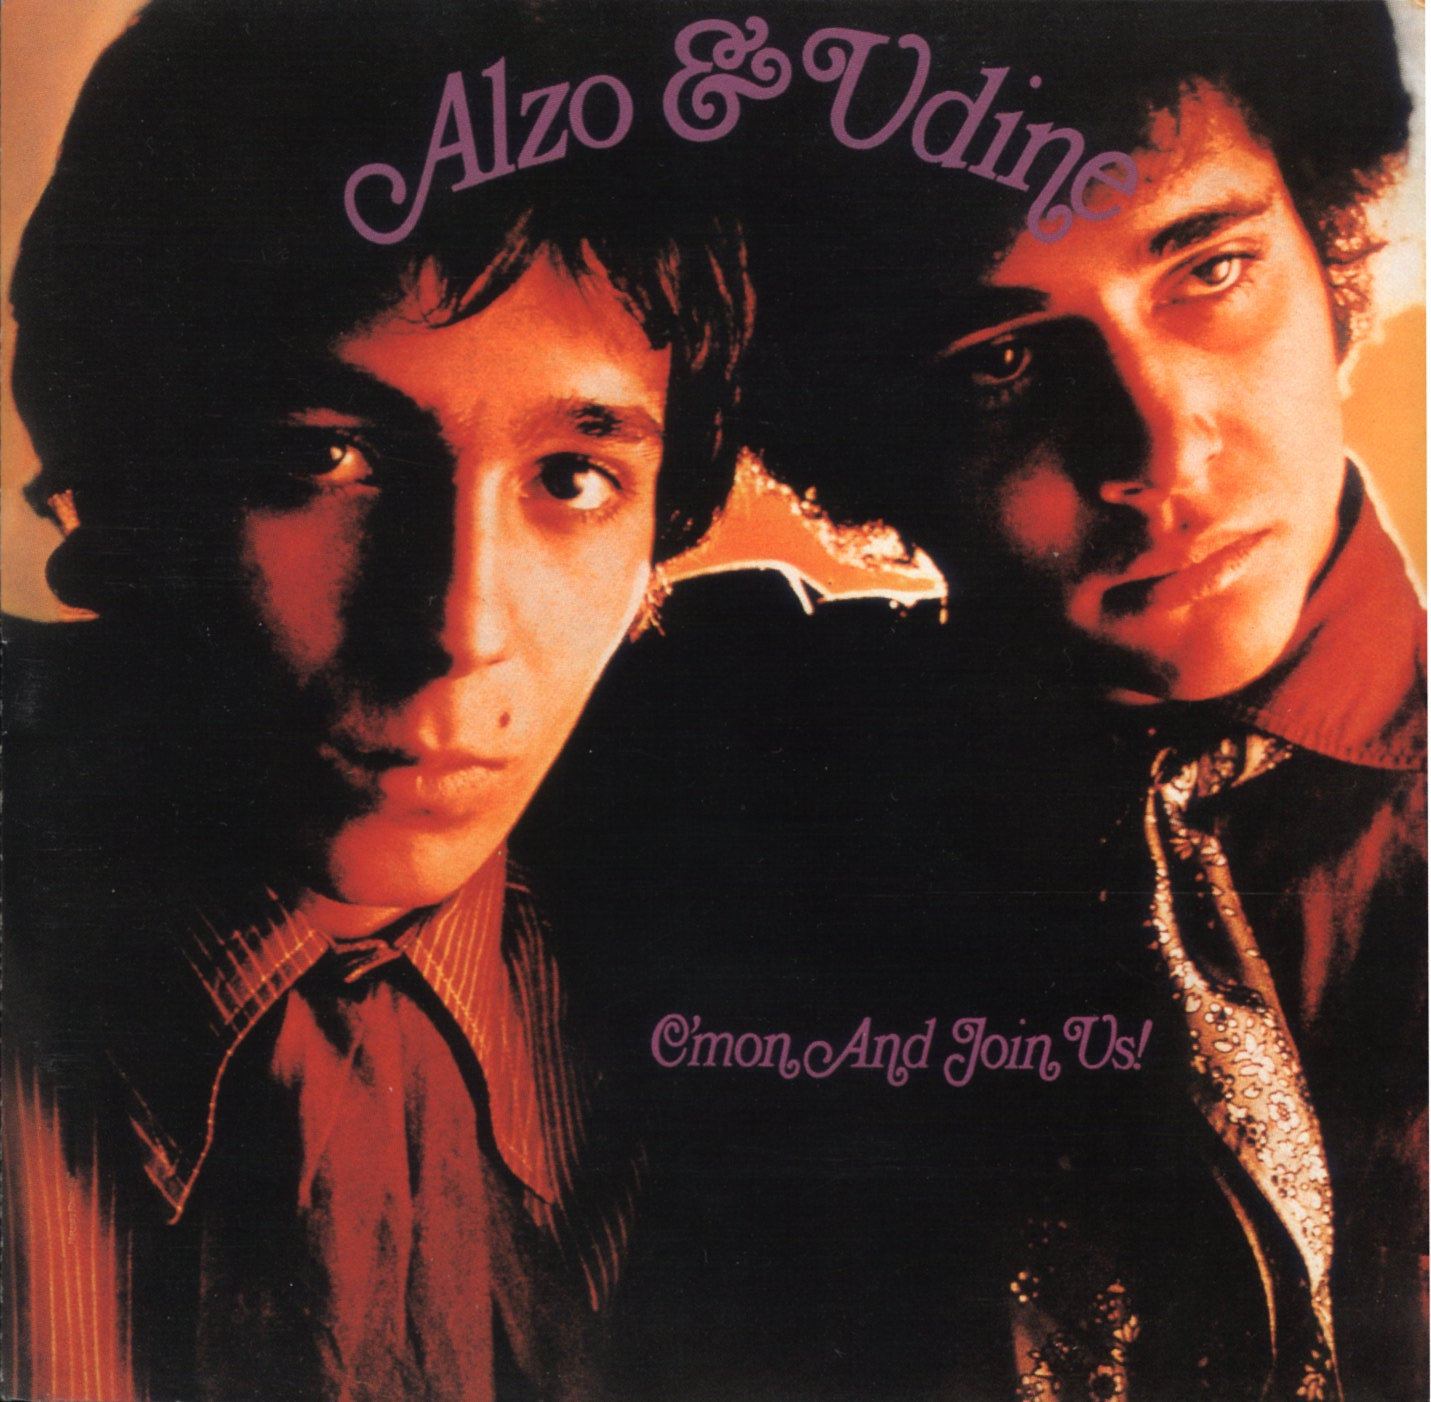 alzo & udine - c'mon and join us 1970 front large